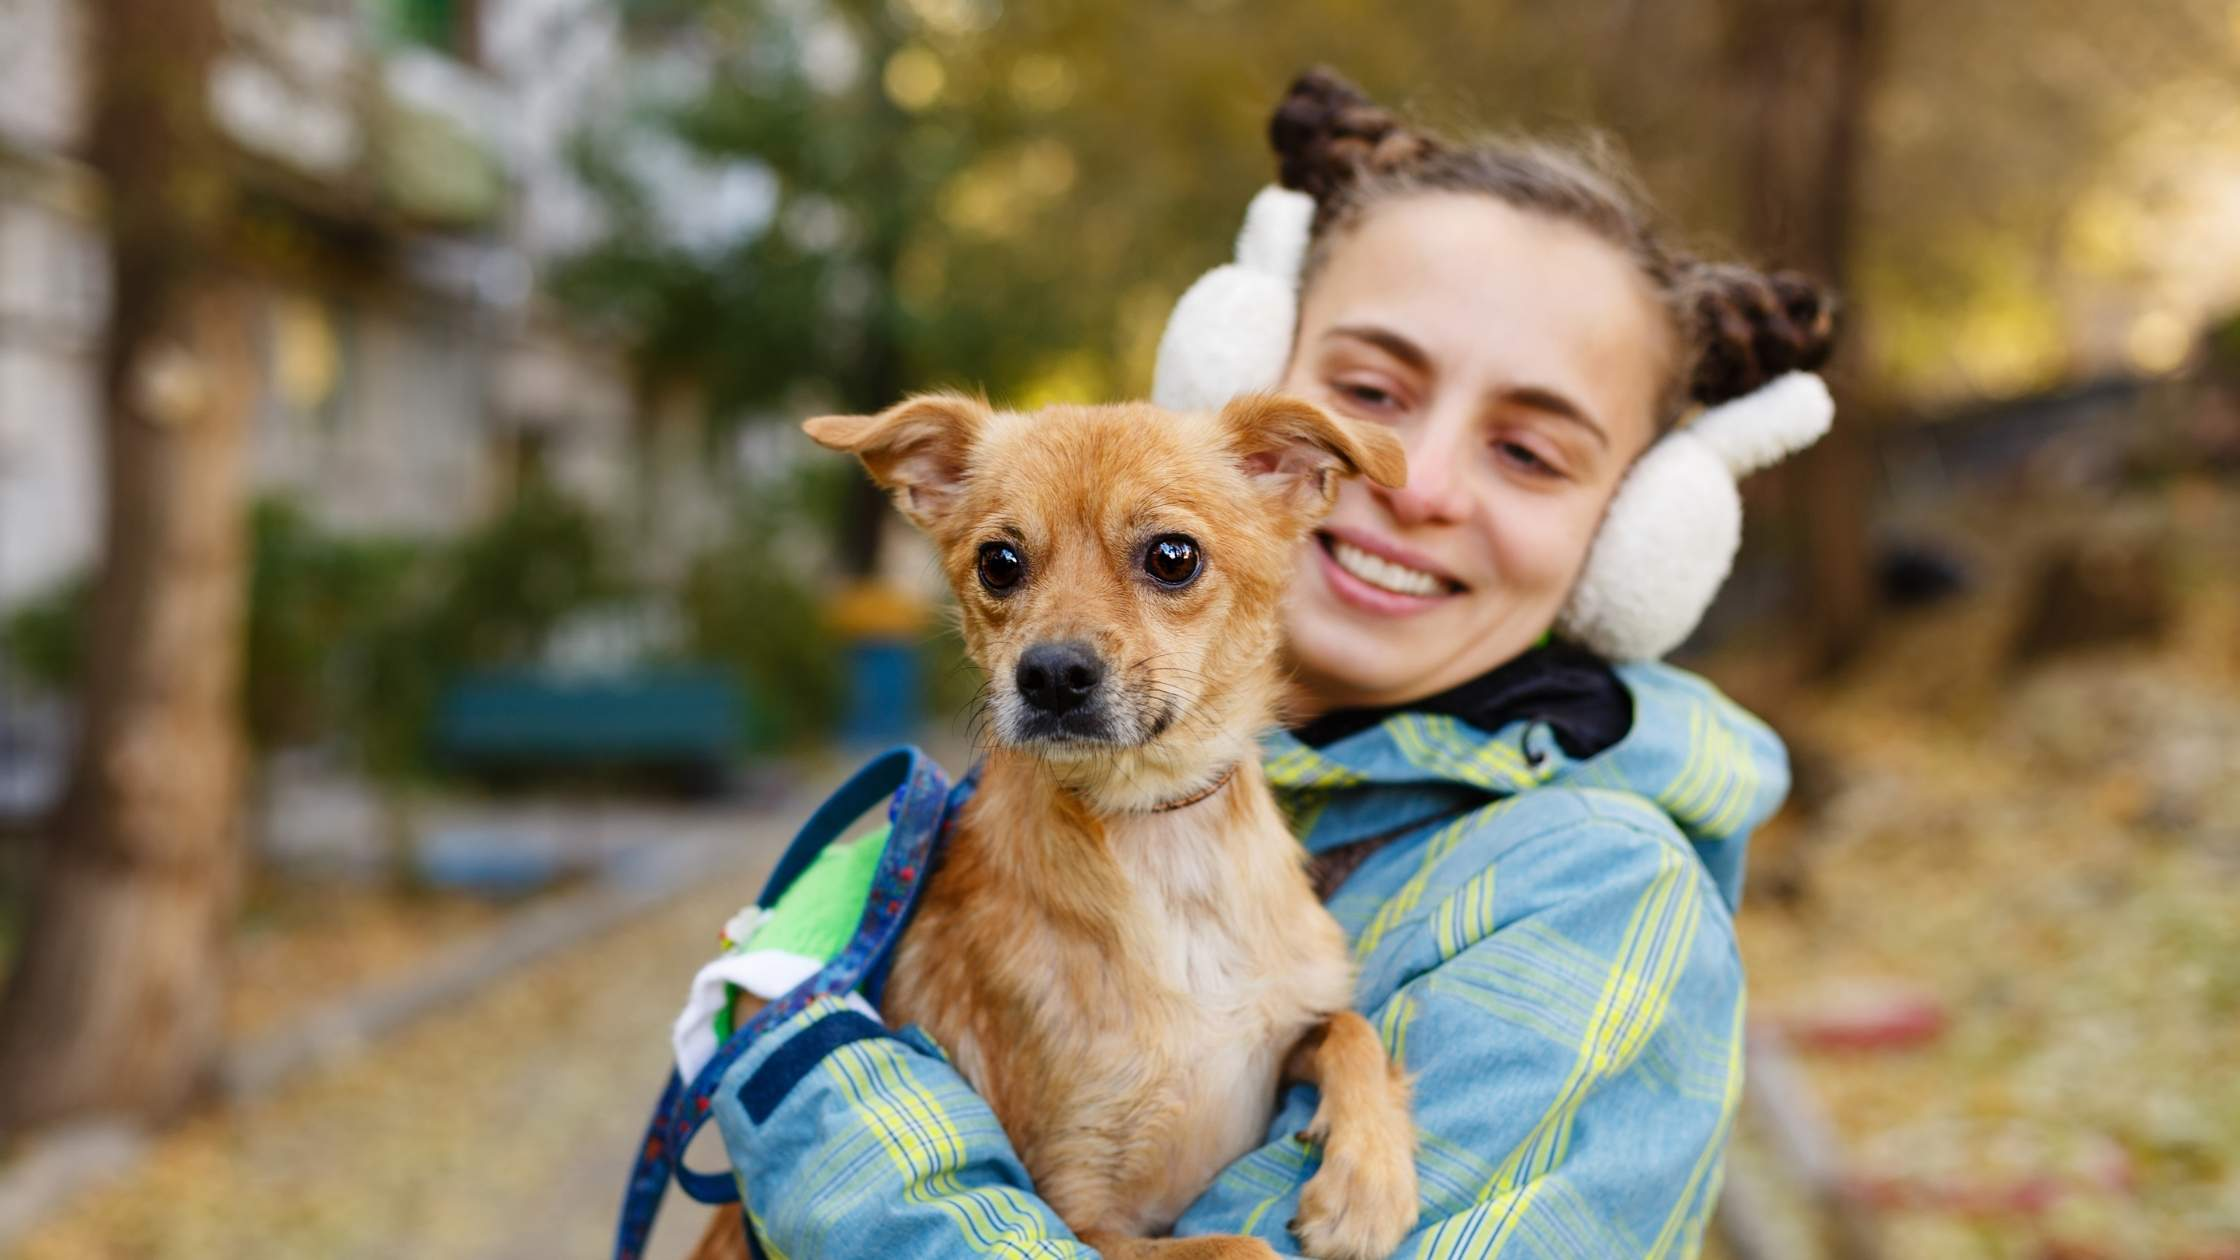 A young woman wearing white ear muffs smiles lovingly at the dog in her arms